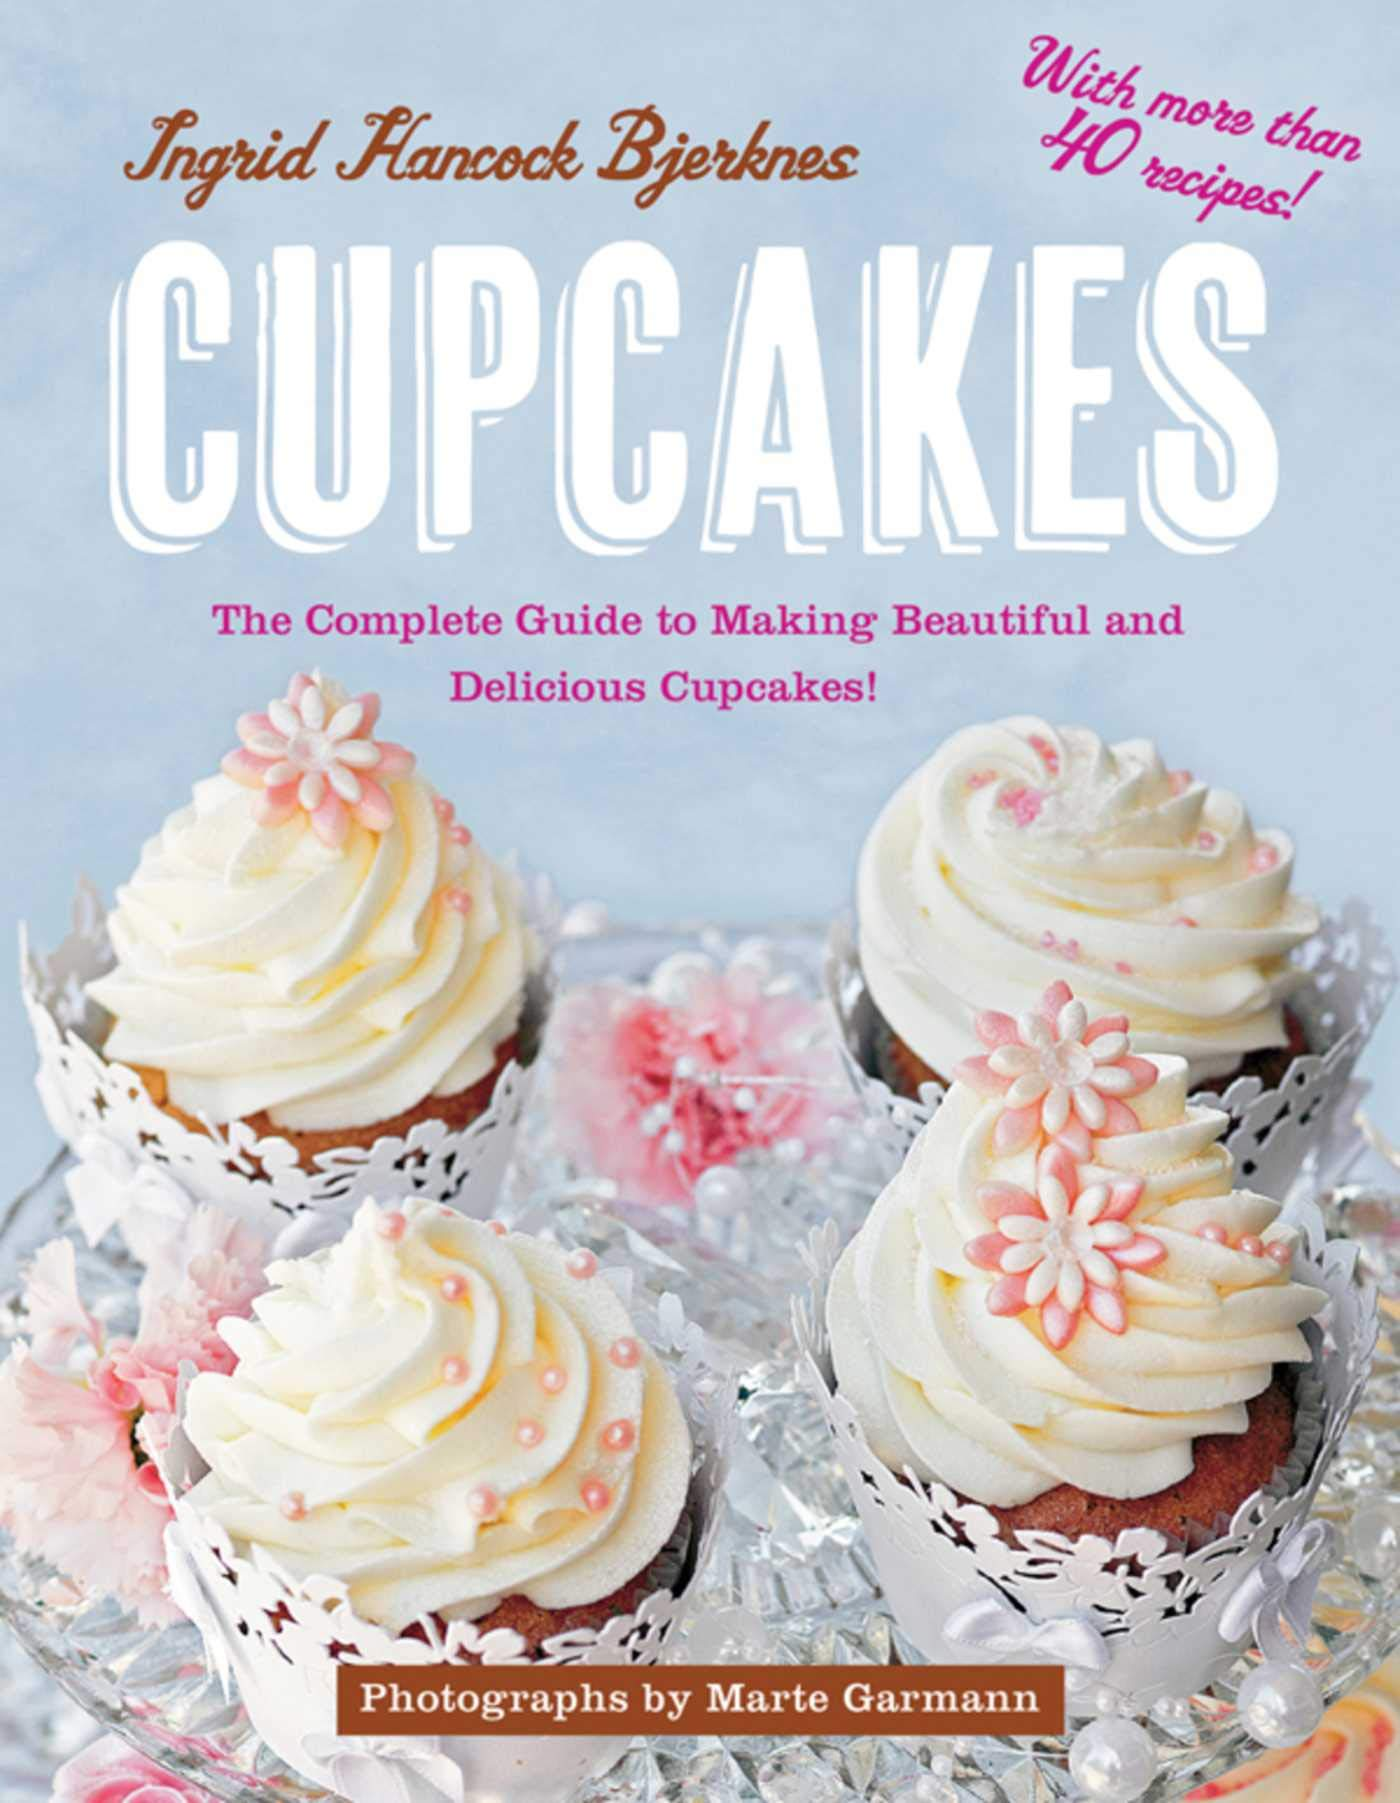 Cupcakes: The Complete Guide to Making Beautiful and Delicious Cupcakes by Skyhorse